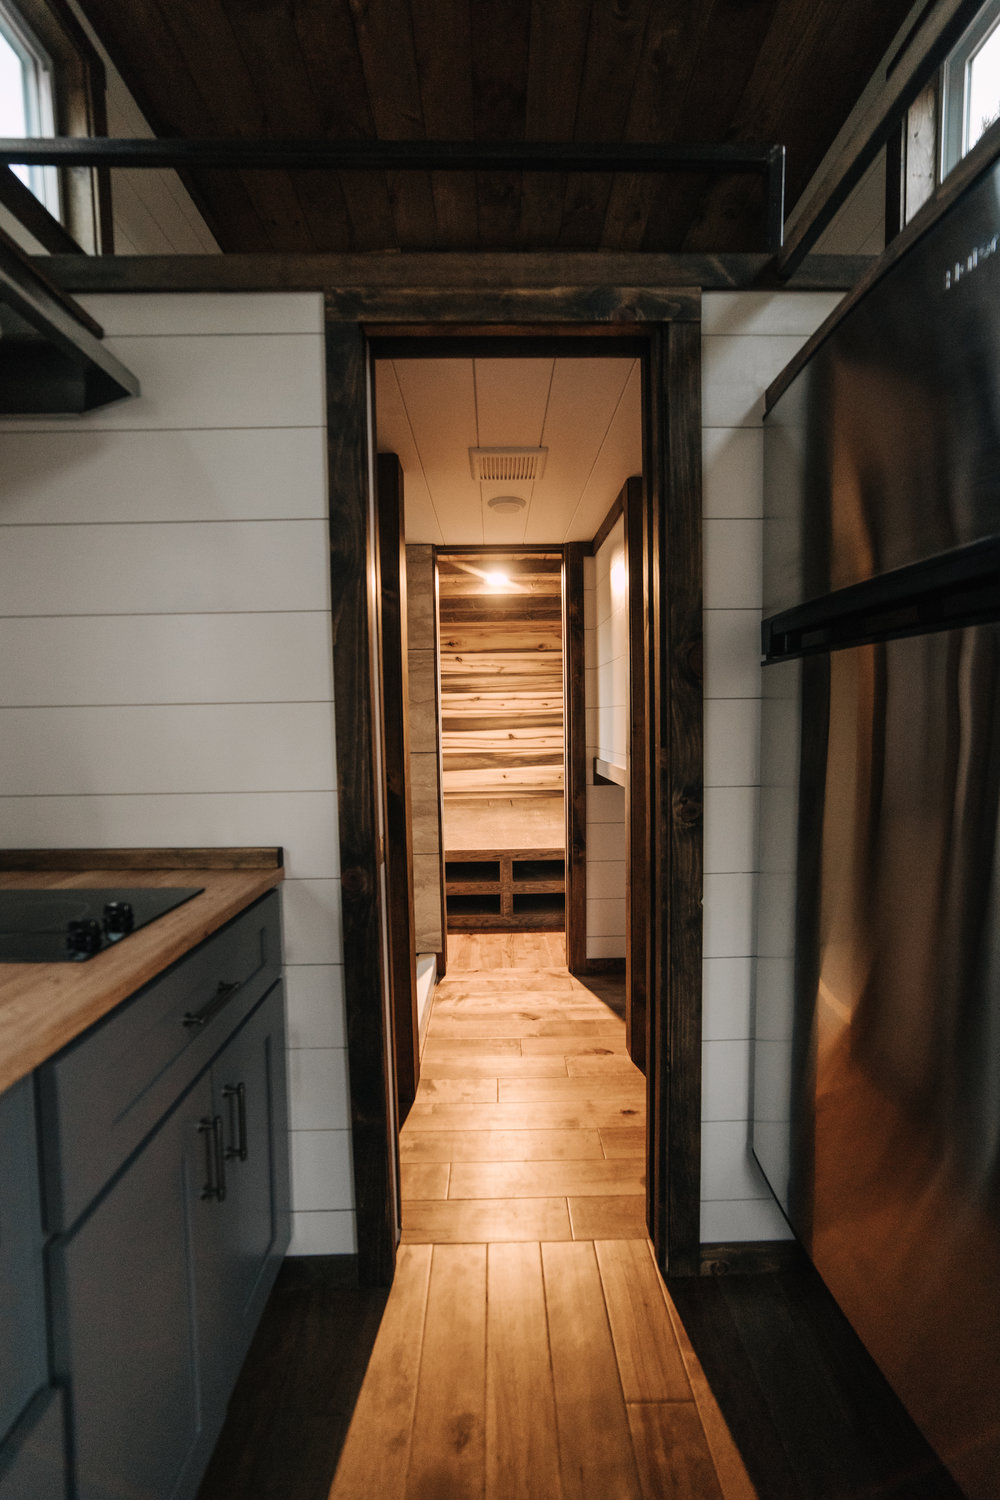 The Noah by Wind River Tiny Homes - 3/4 size stainless fridge, custom welded steel ladder & railing, gray shaker cabinets, butcher block counter